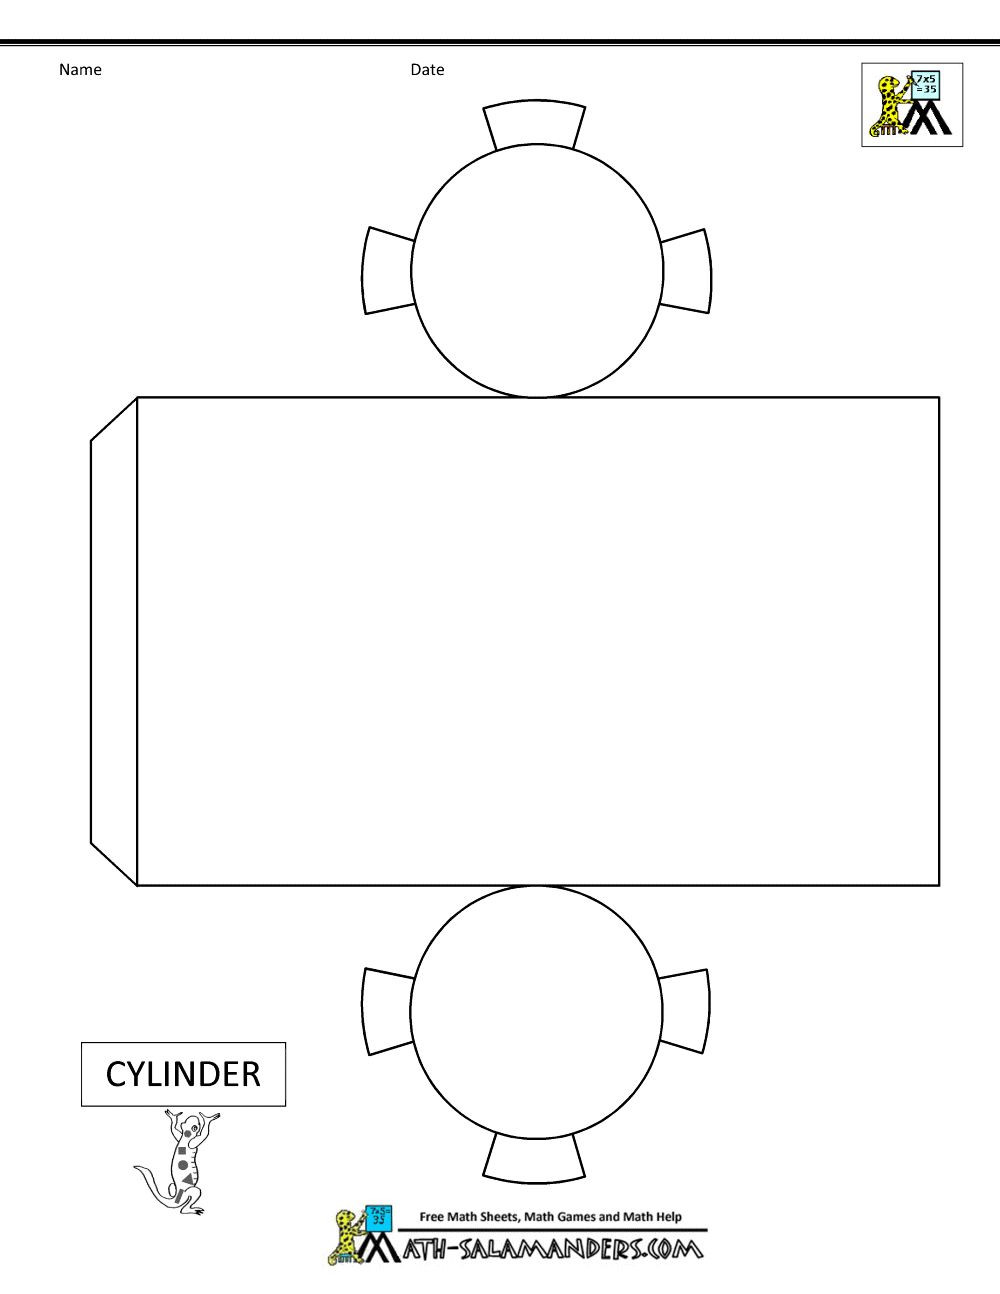 Geometry Template Printable Cylinder Box